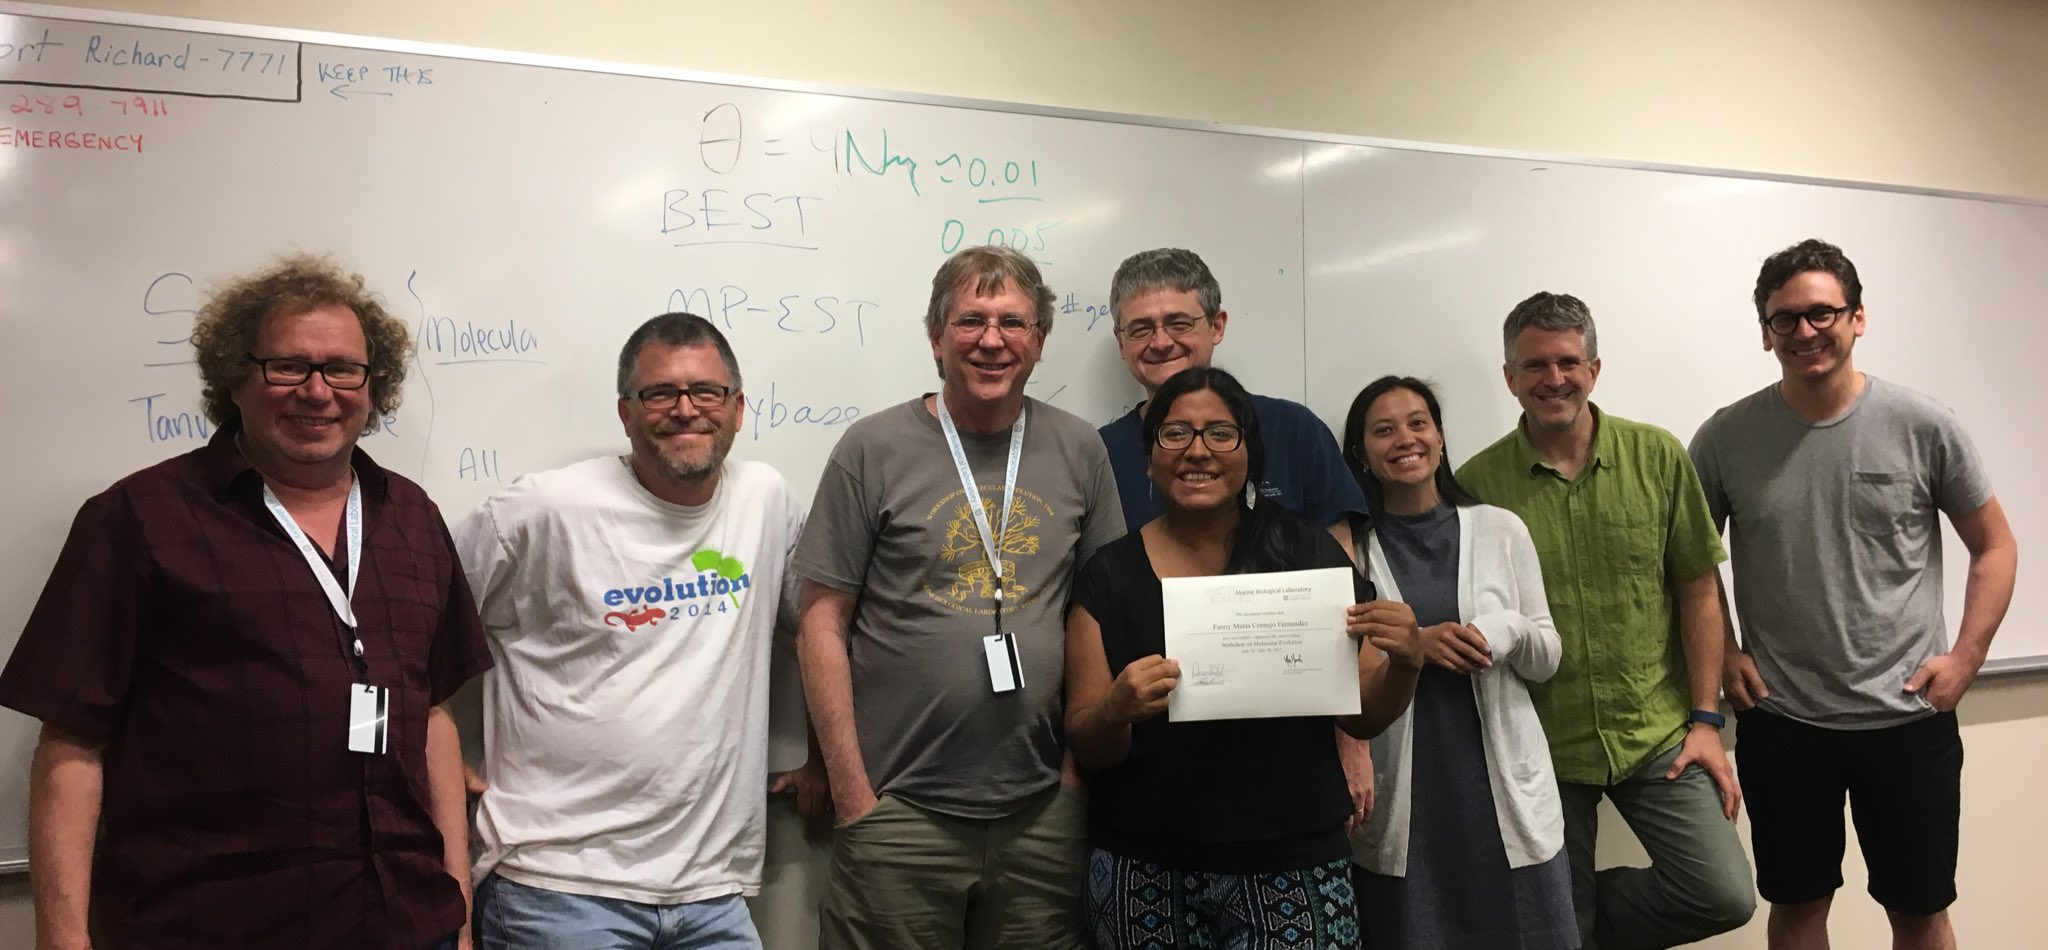 Wonderful 10 days at MBL! My whole diss is going to change, but in a better way thanks to instructors! #MolEvol2017 https://t.co/lqUiKASrQK